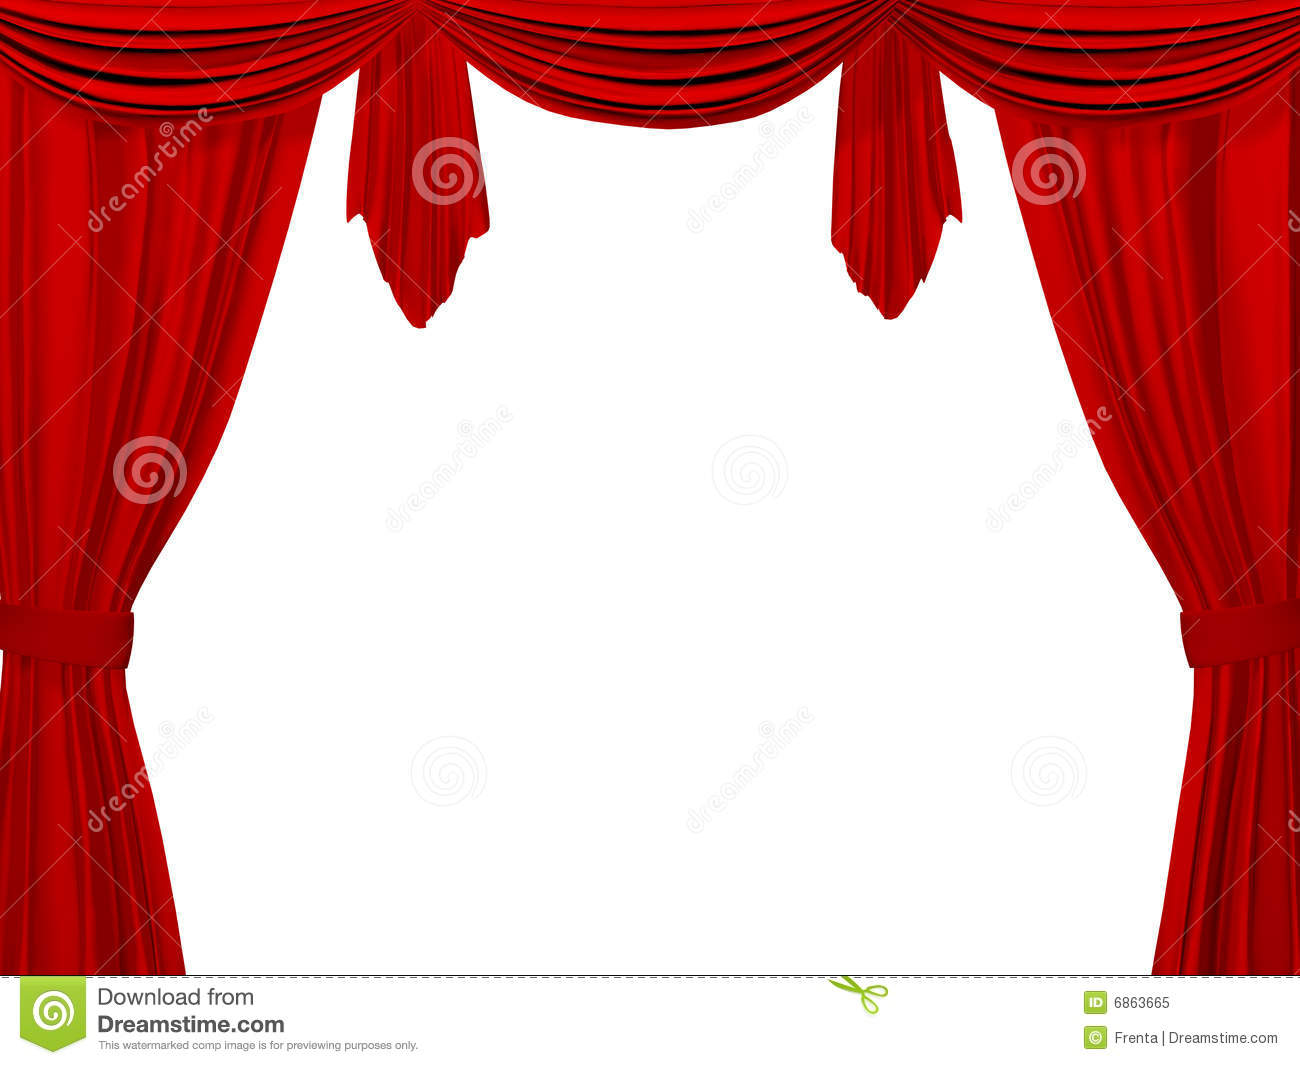 Theatrical Curtain Of Red Color Stock Image